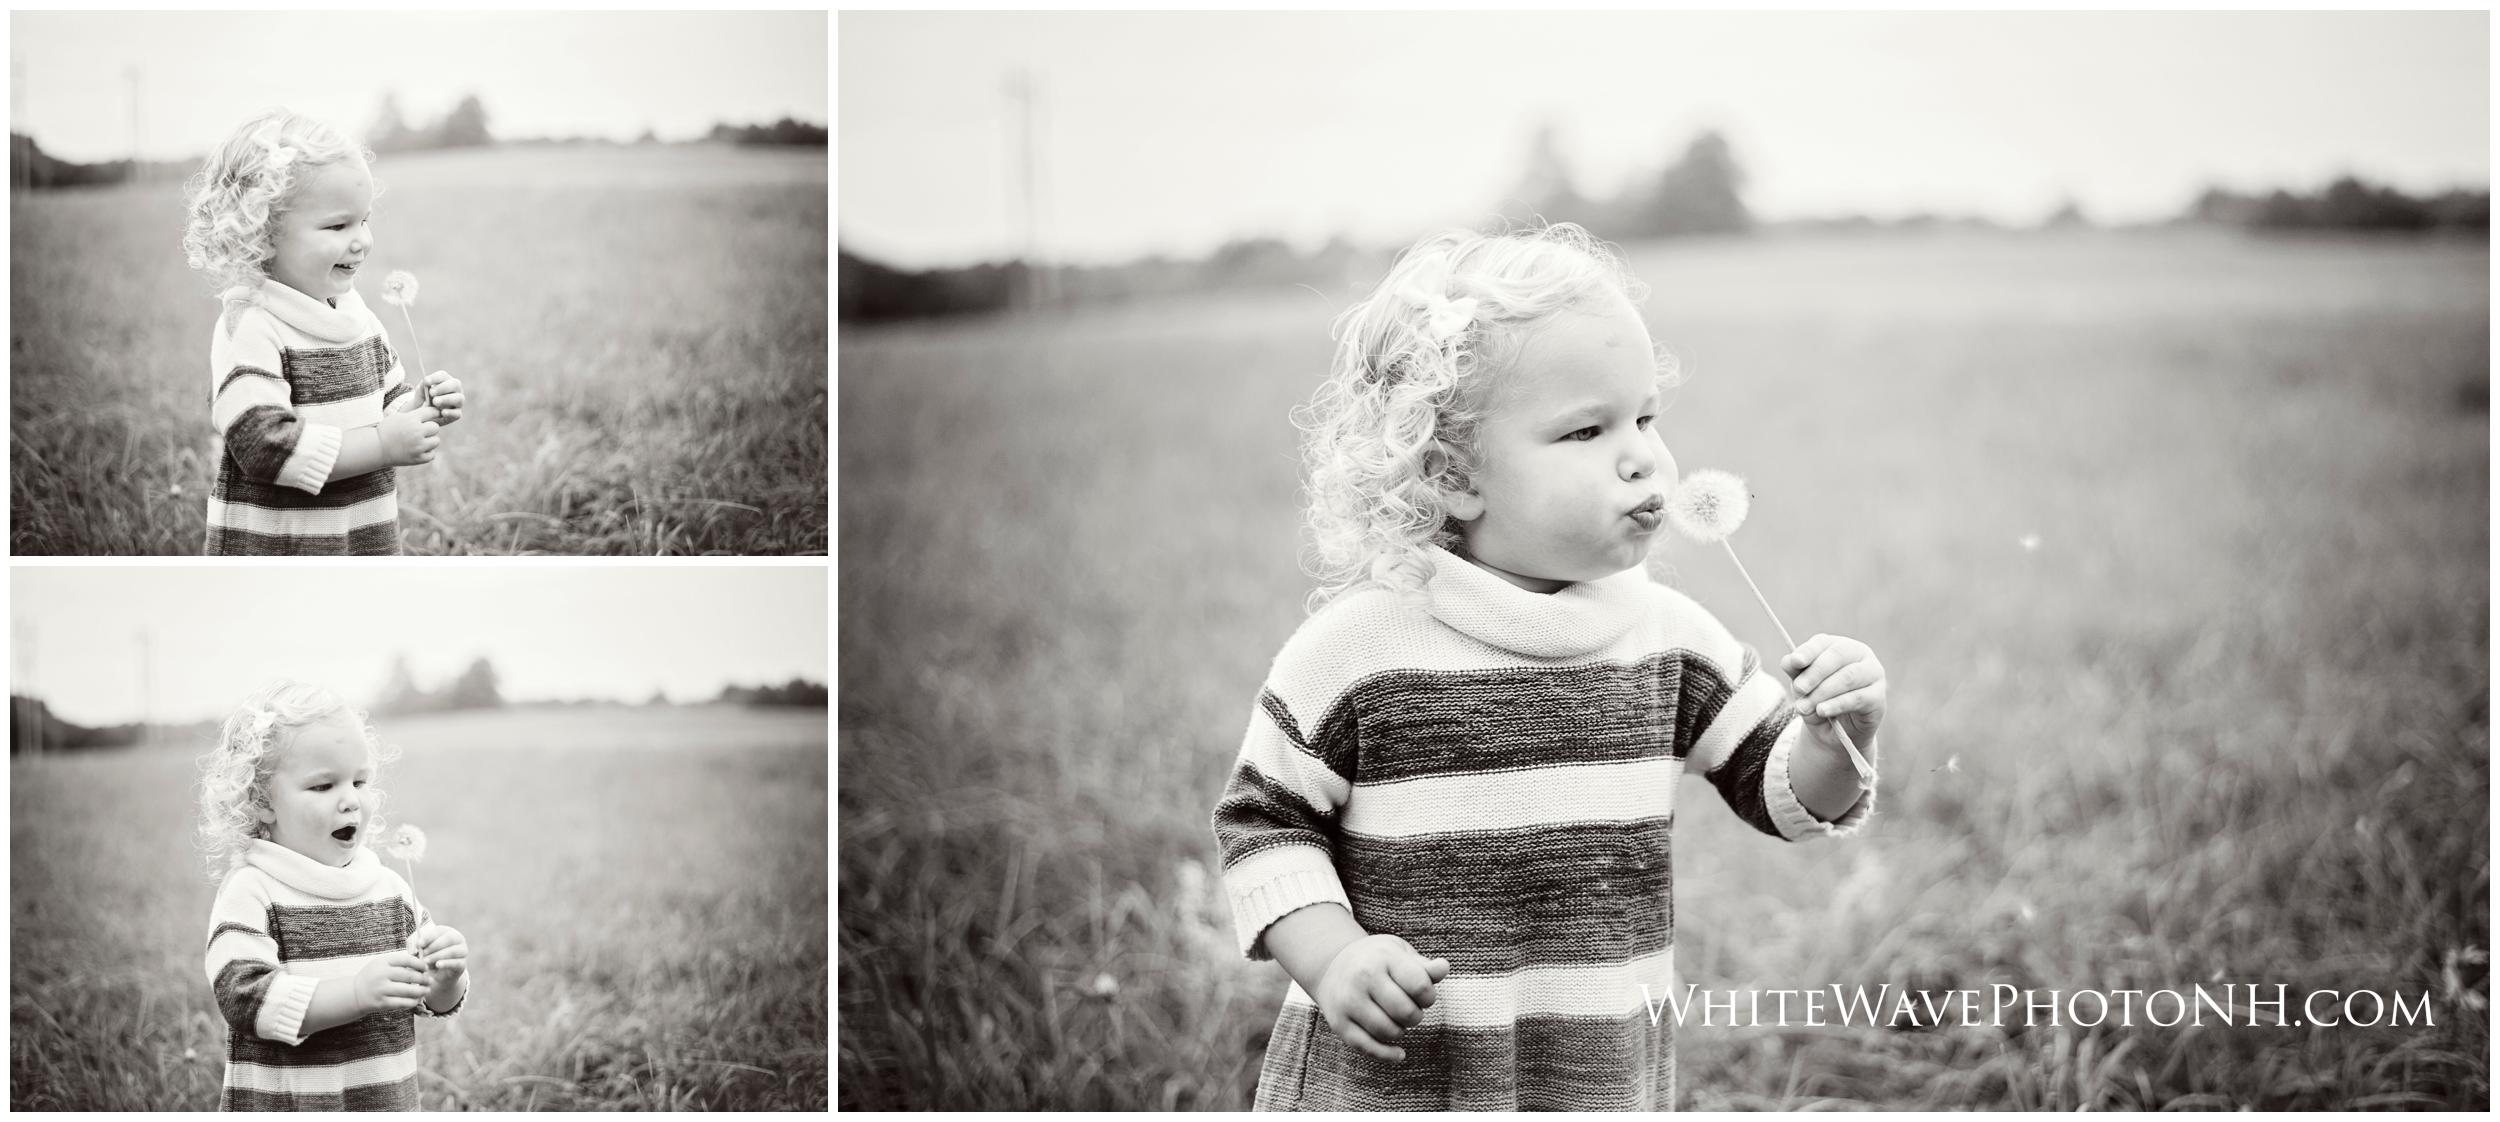 Childrens-Photographer-Exeter-NH, NH-Family-Photographer, Raynes-Farm-Exeter-NH, White-Wave-Photography